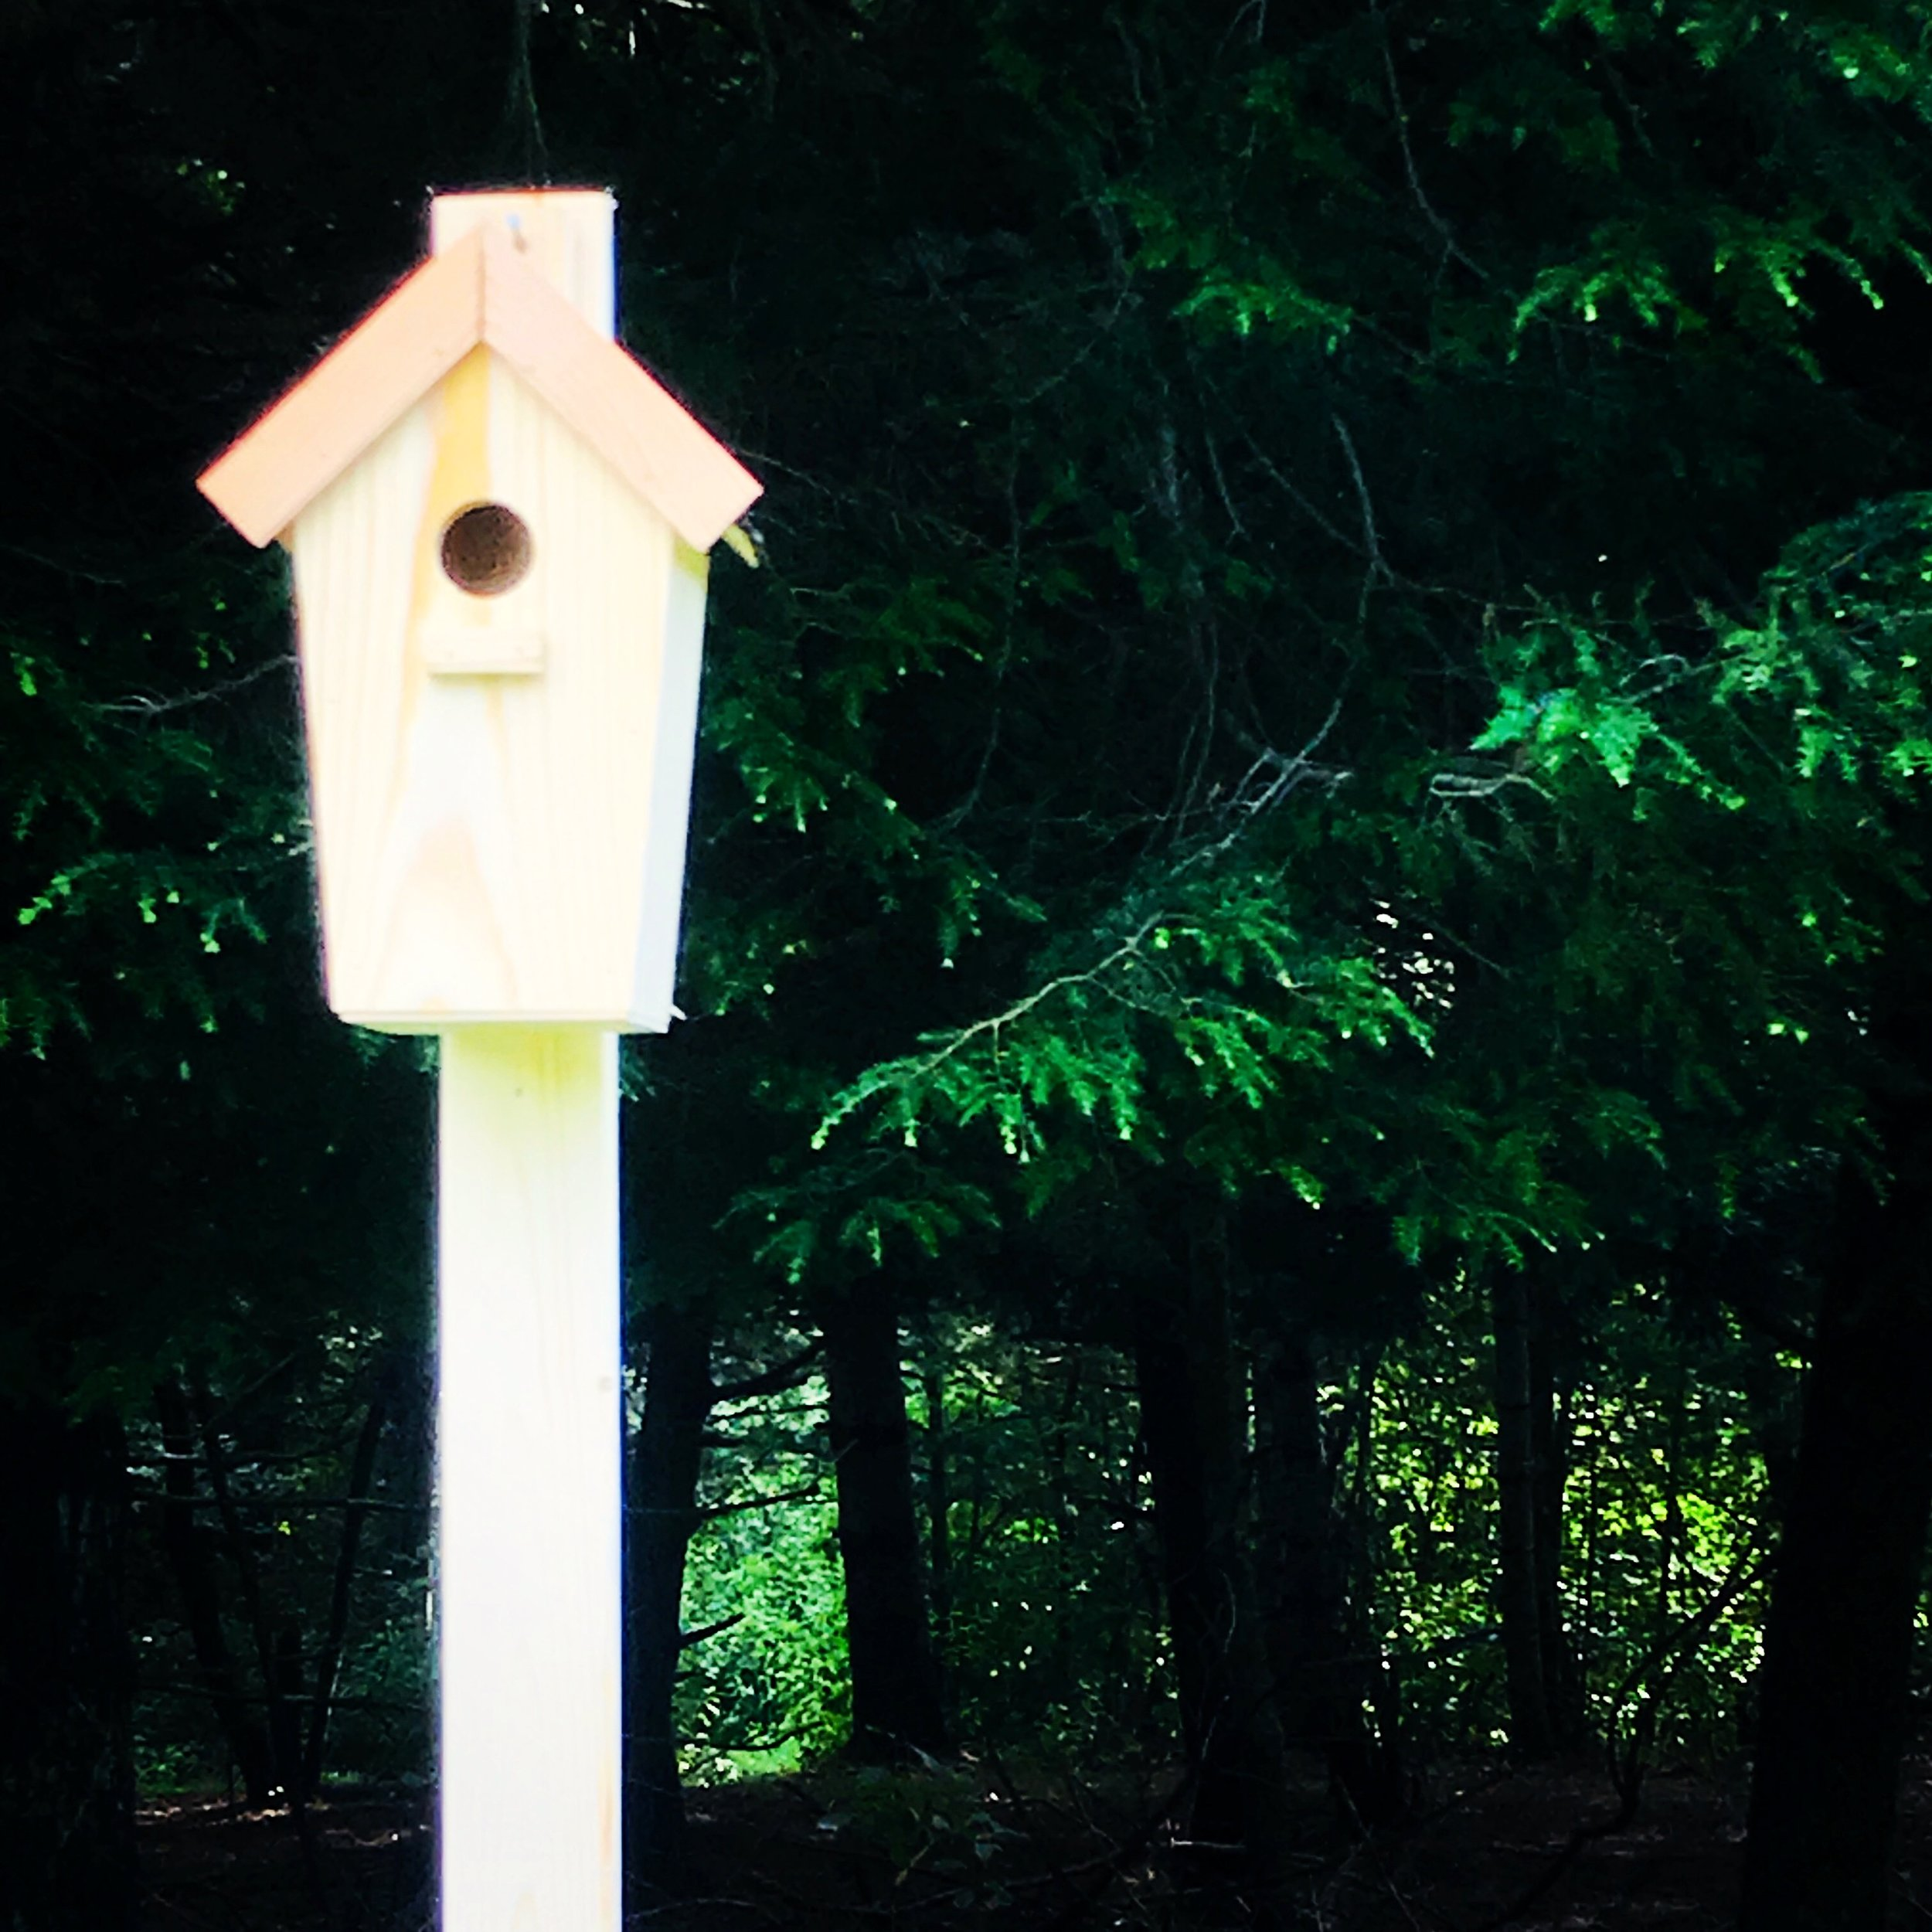 Our bird boxes are up